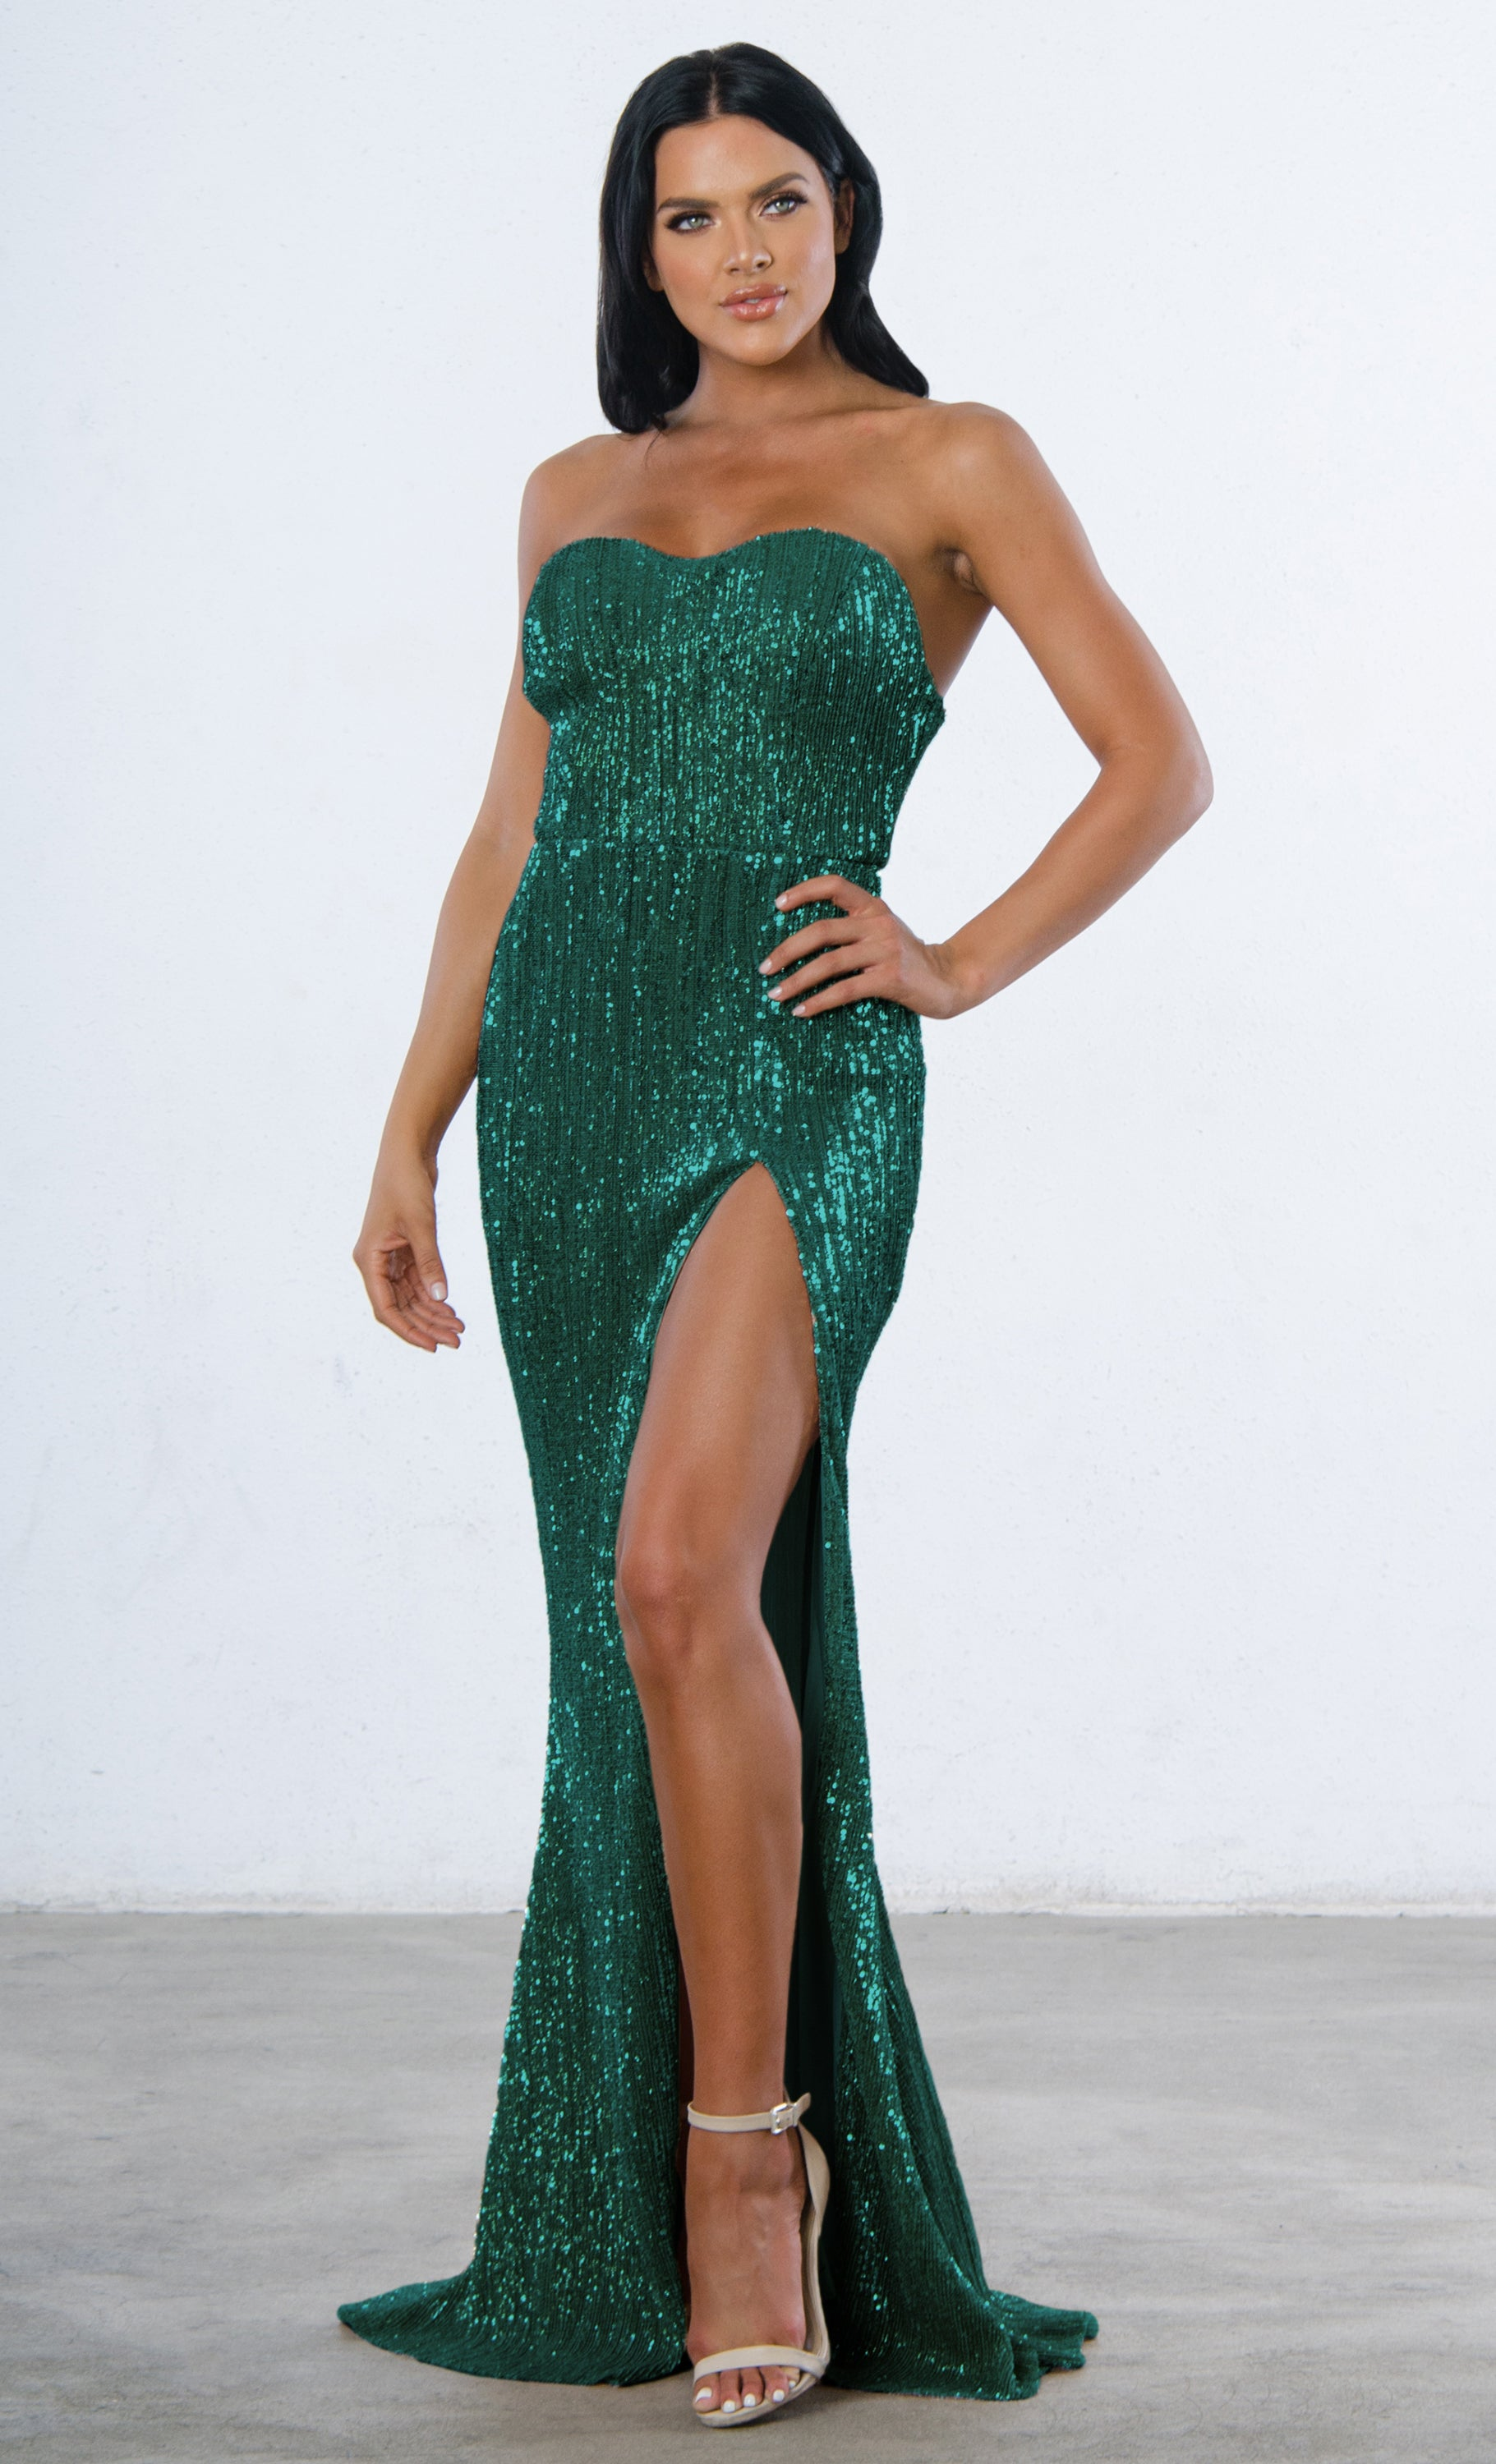 Indie XO Show Me Some Love Blue Sequin Strapless Sweetheart Neck High Slit Fishtail Maxi Dress - 5 Colors Available